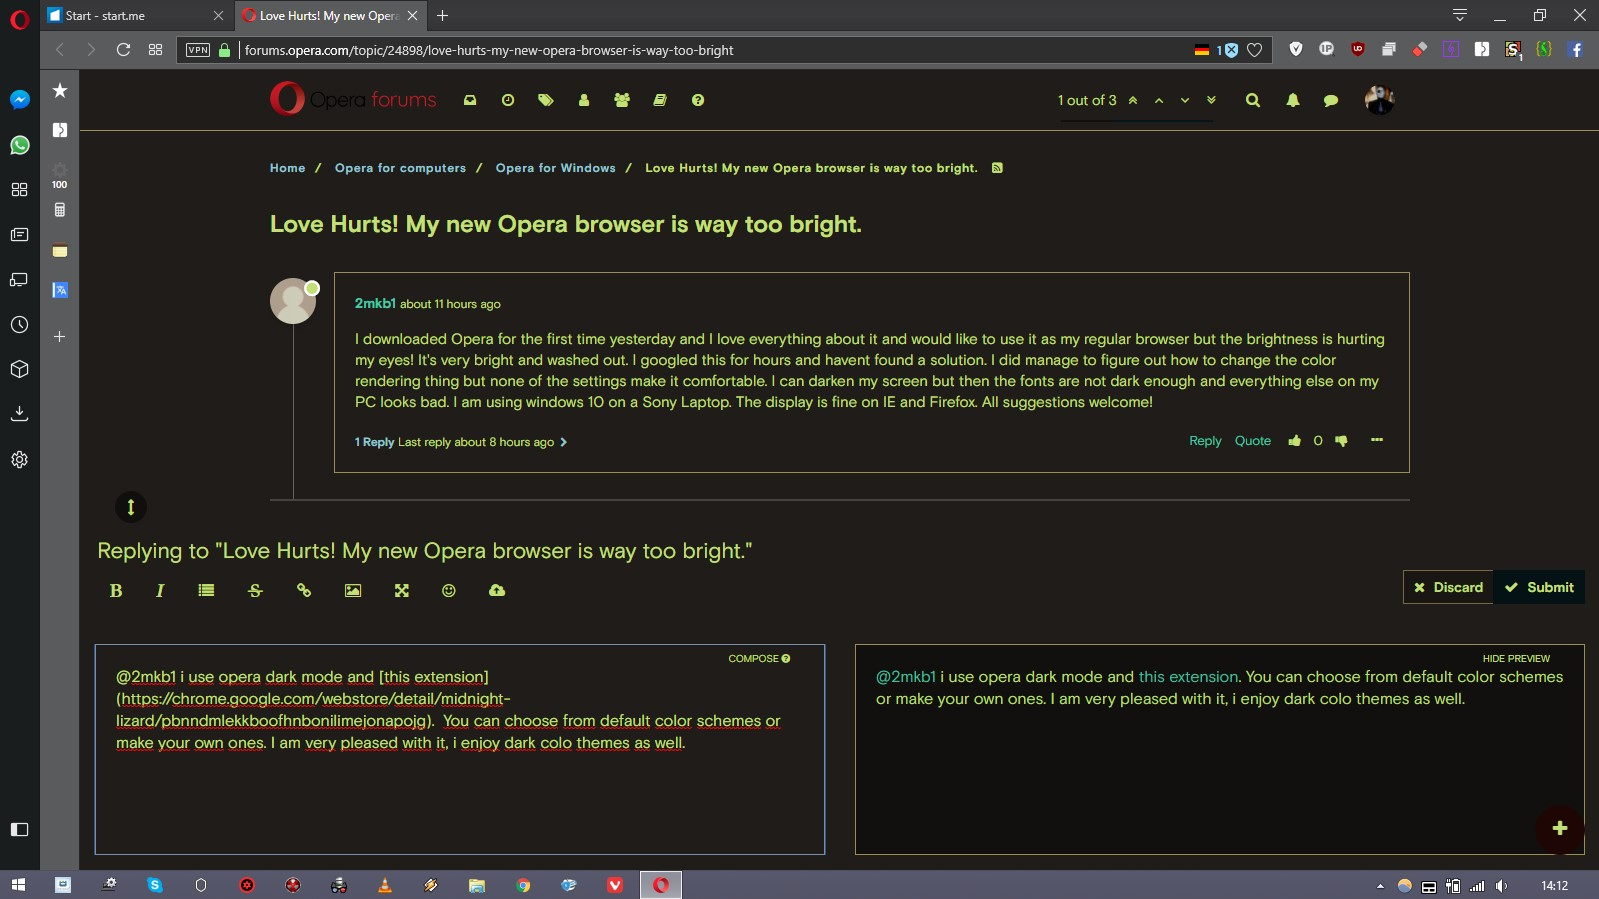 Love Hurts! My new Opera browser is way too bright    Opera forums